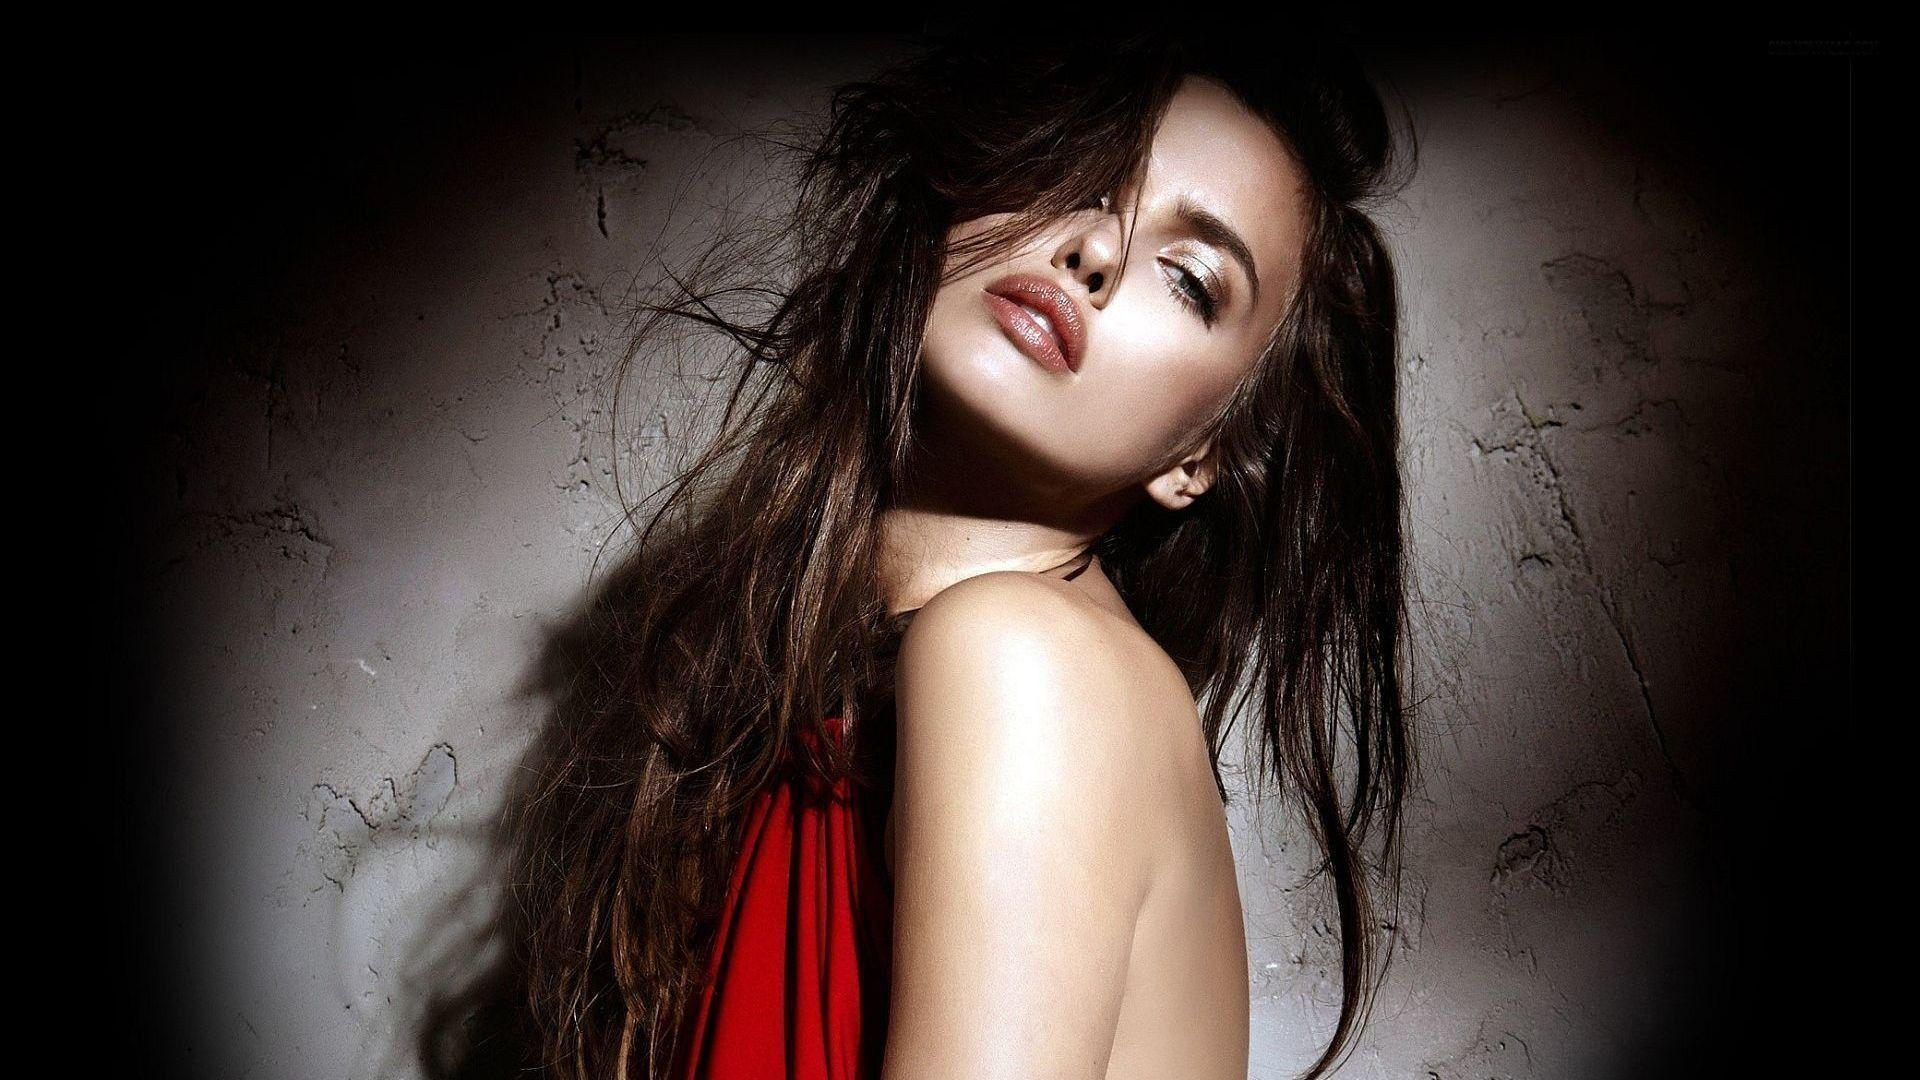 irina shayk wallpapers hd - wallpaper cave